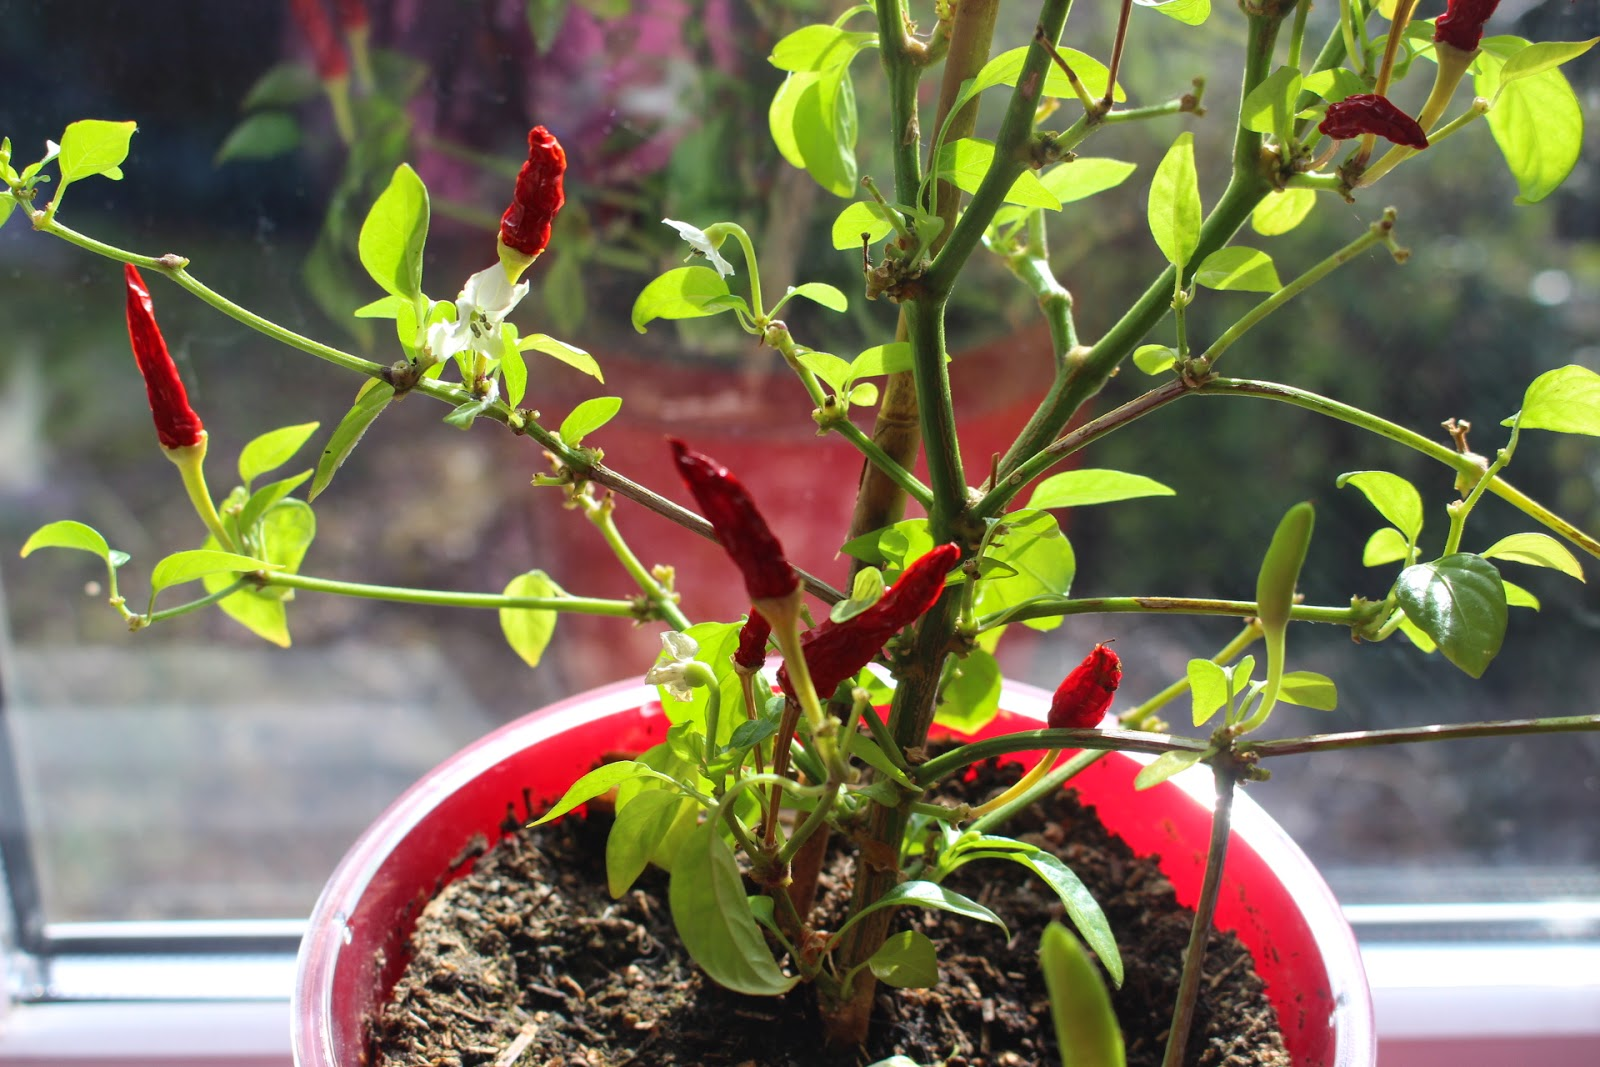 Overwintering chilli plant on my windowsill